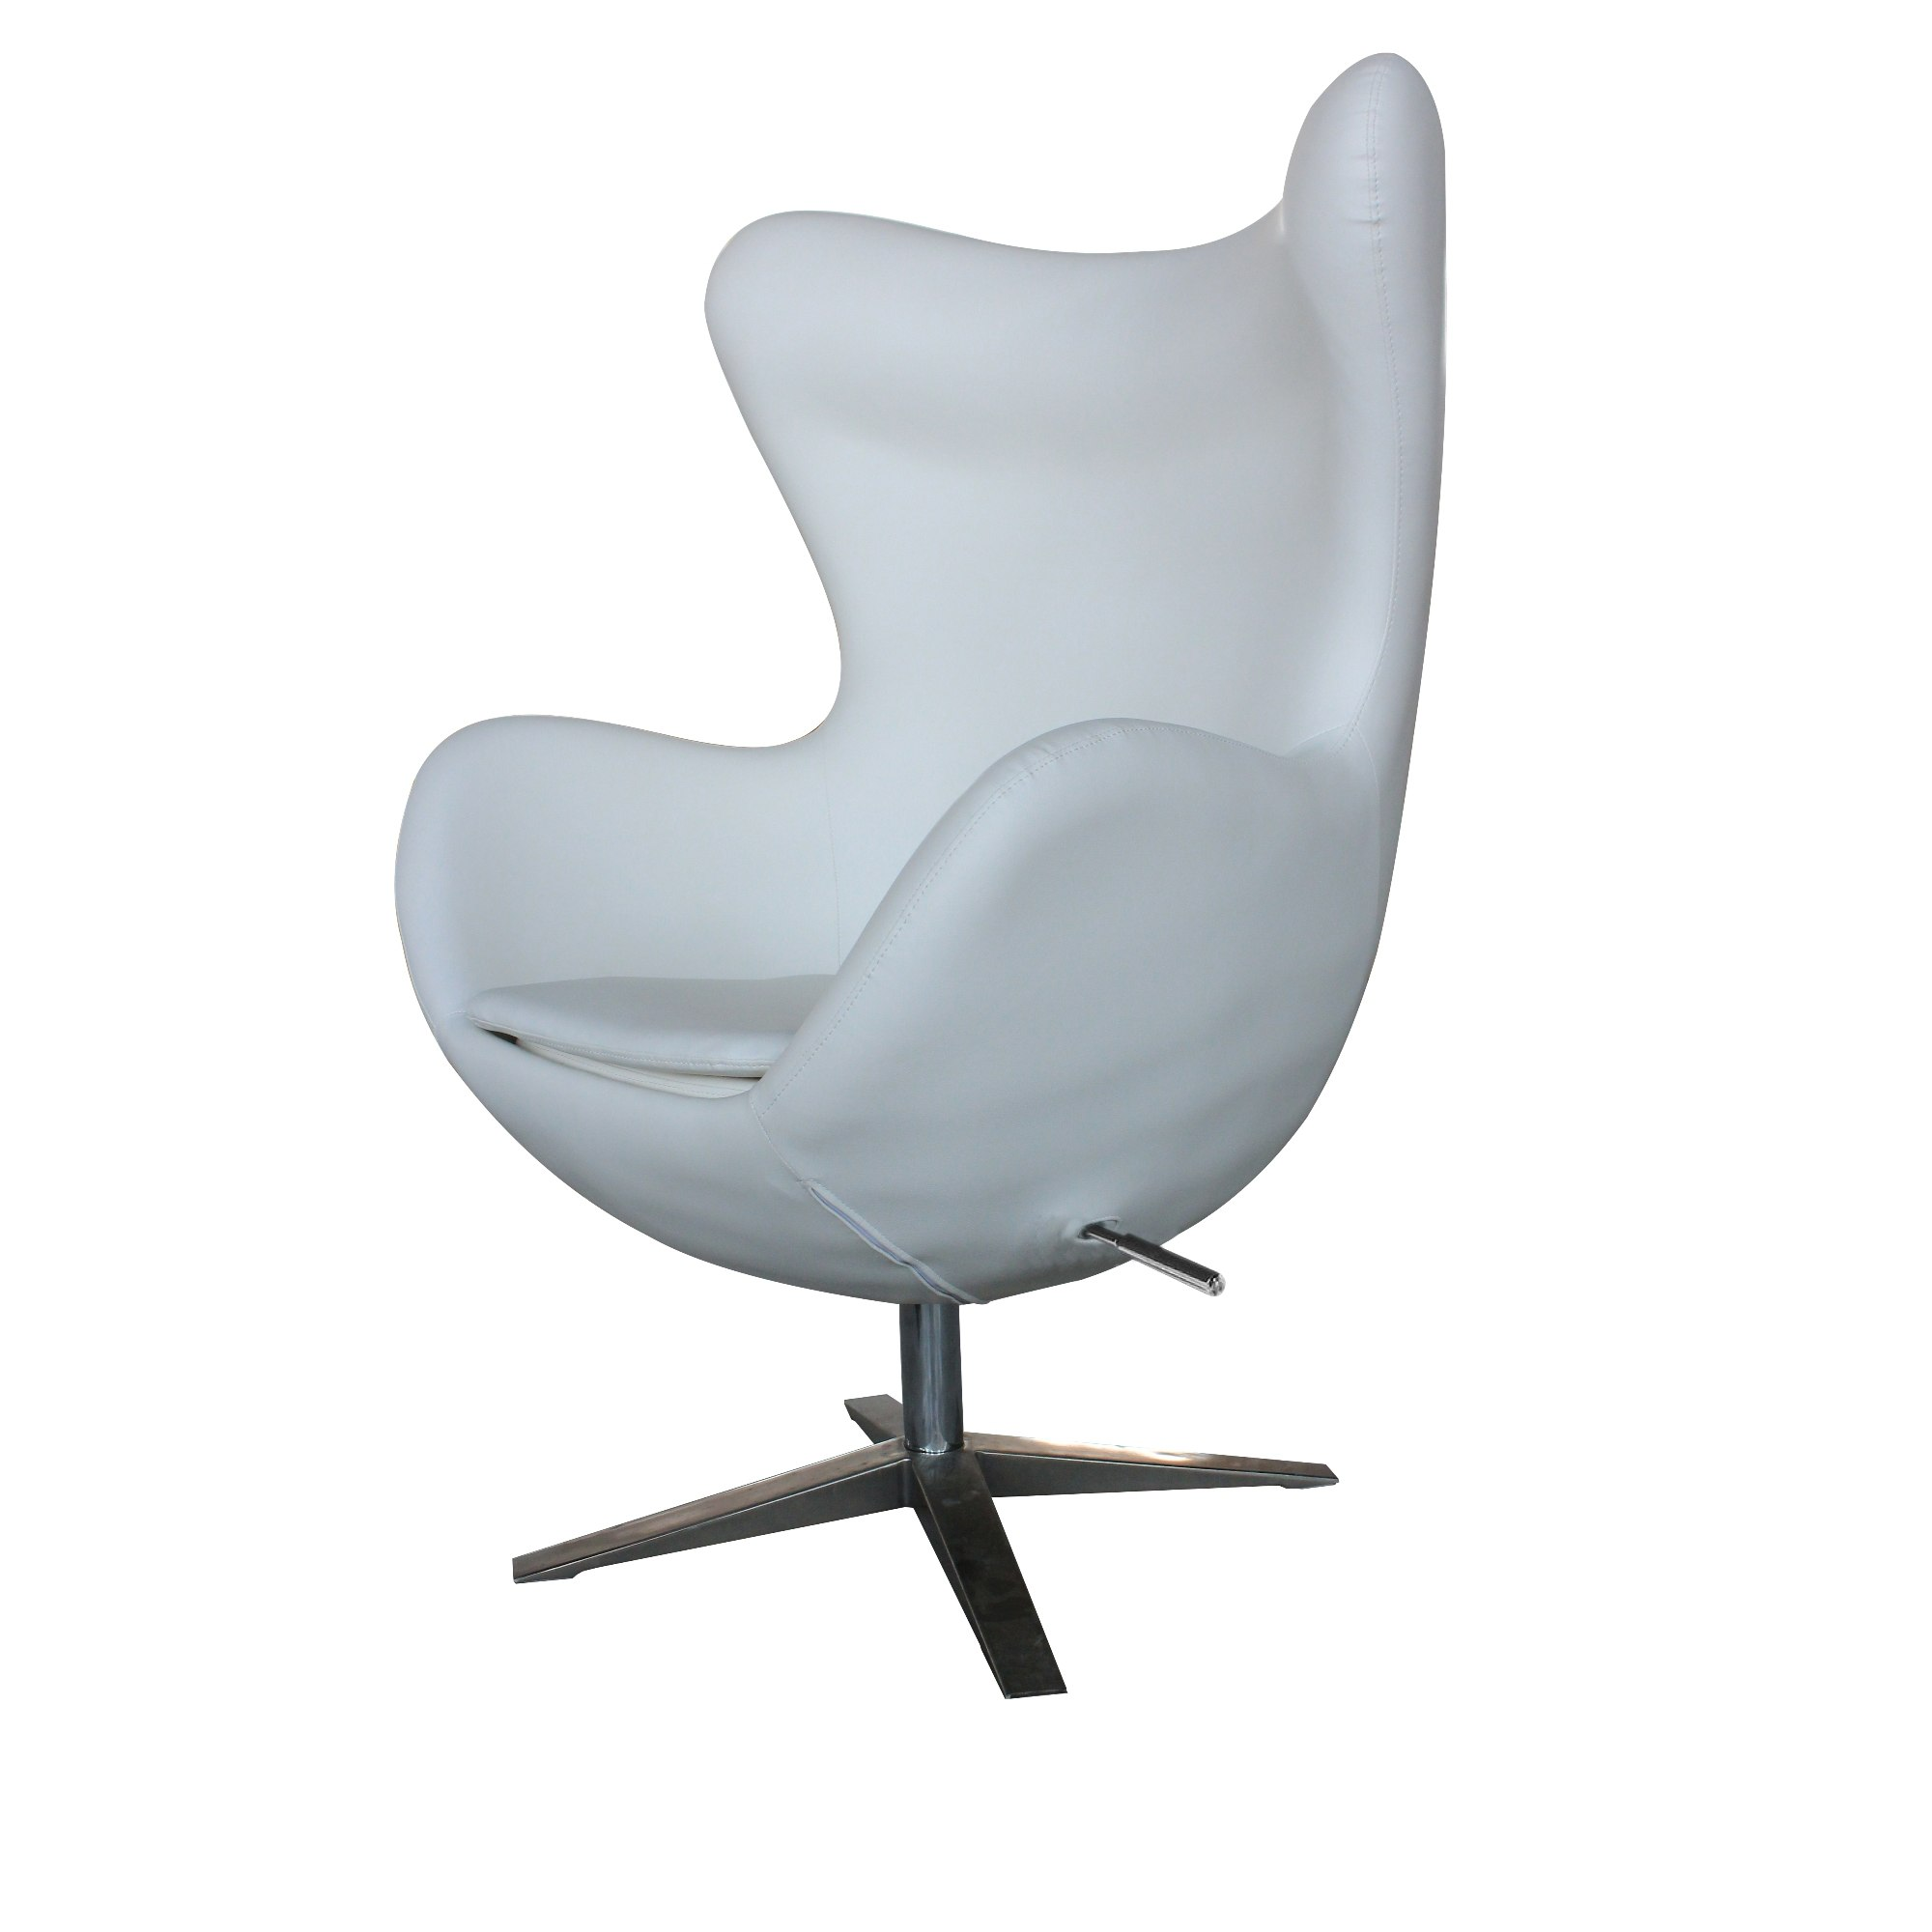 White Leather Egg Chair Arne Jacobsen Egg Chair Replica Sale The Best Christmas